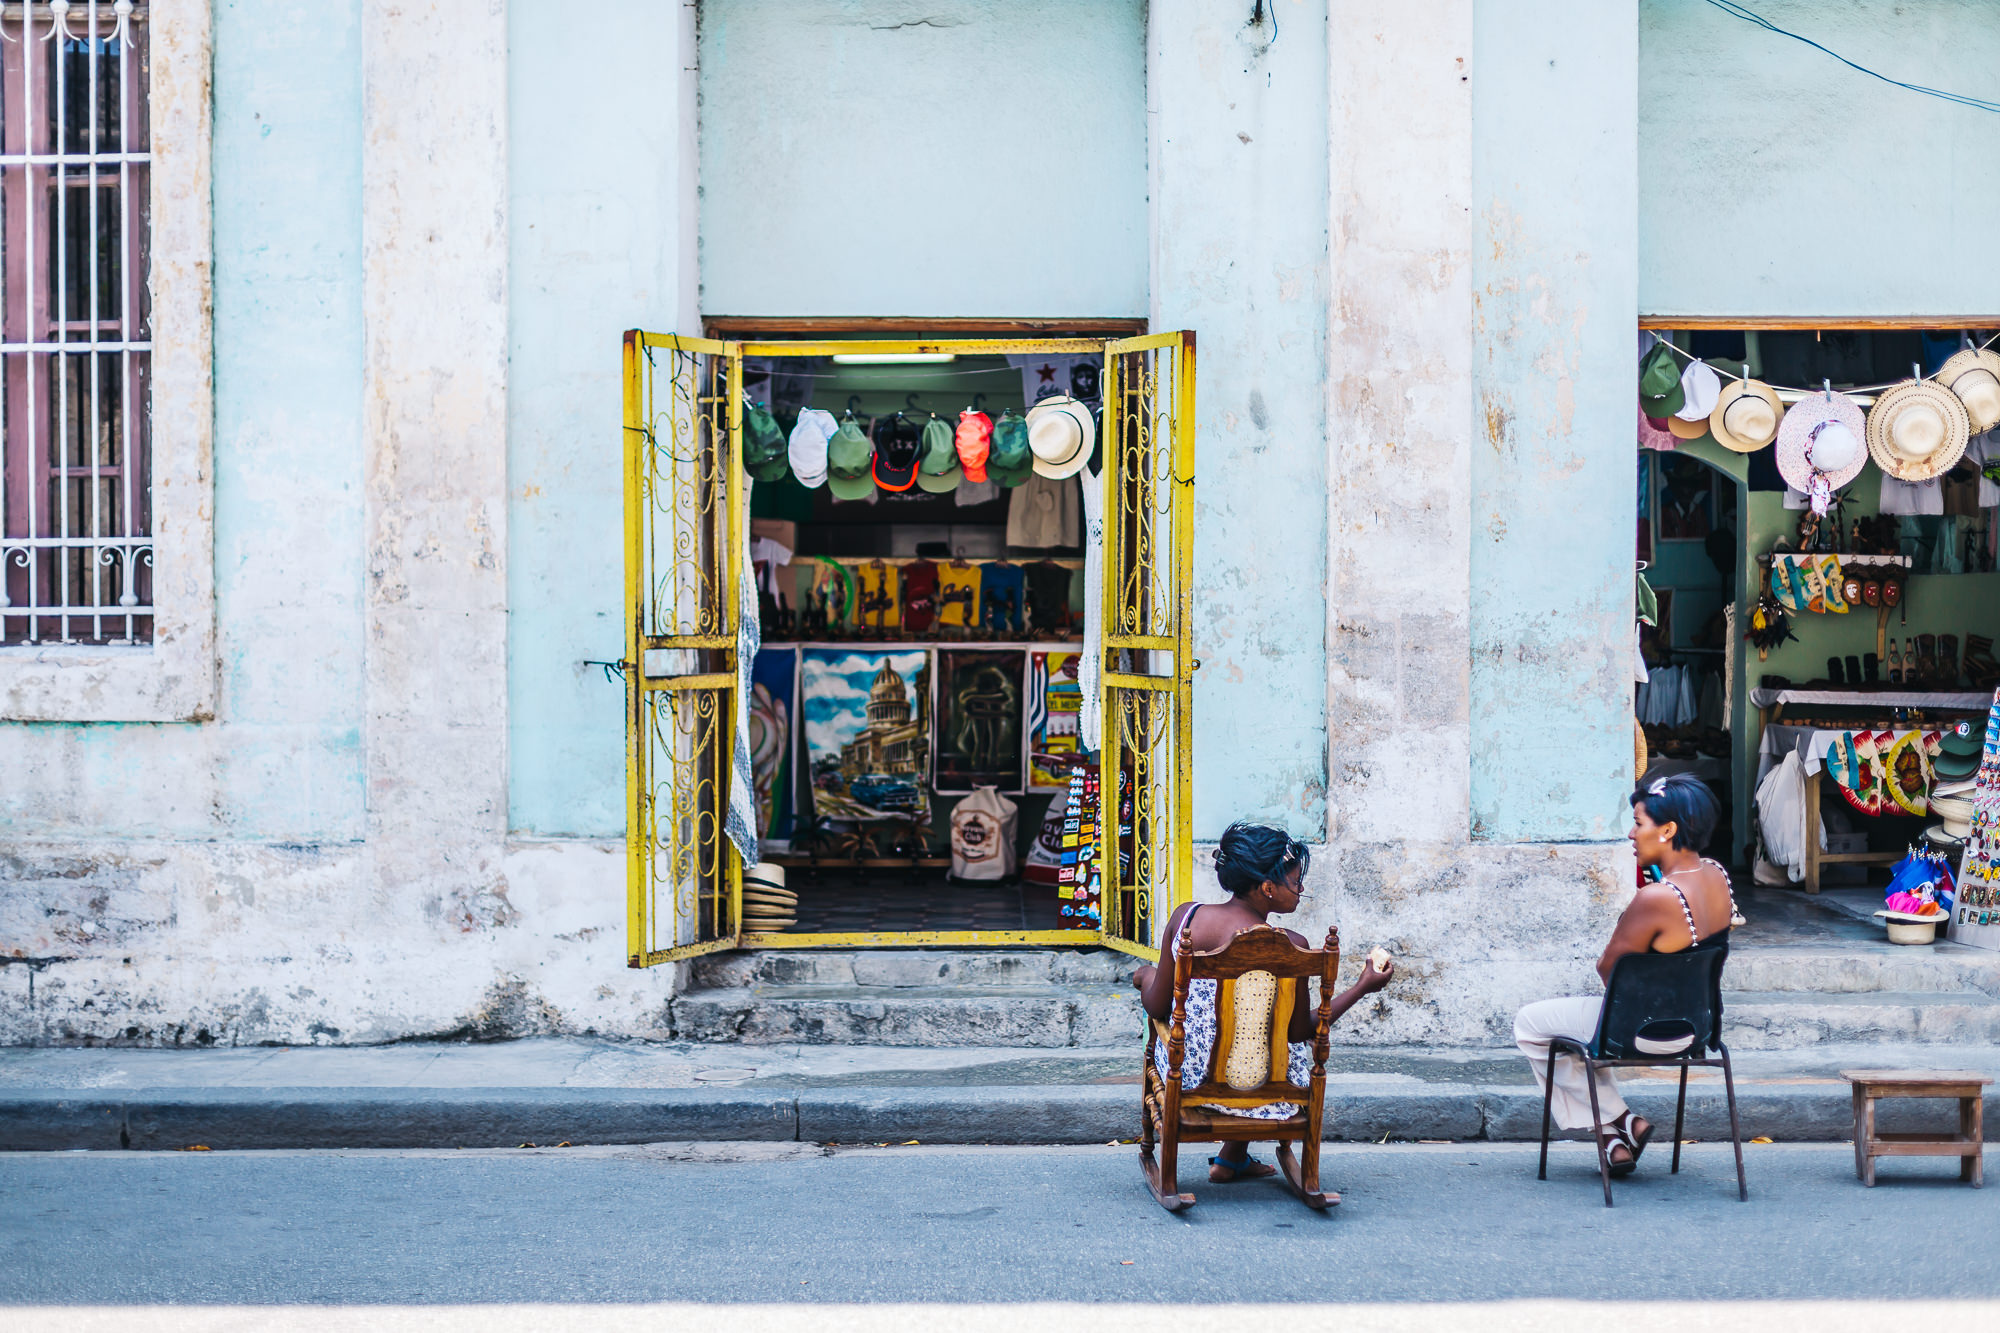 Friendly Cubans having an afternoon chat as they sell items from their shops